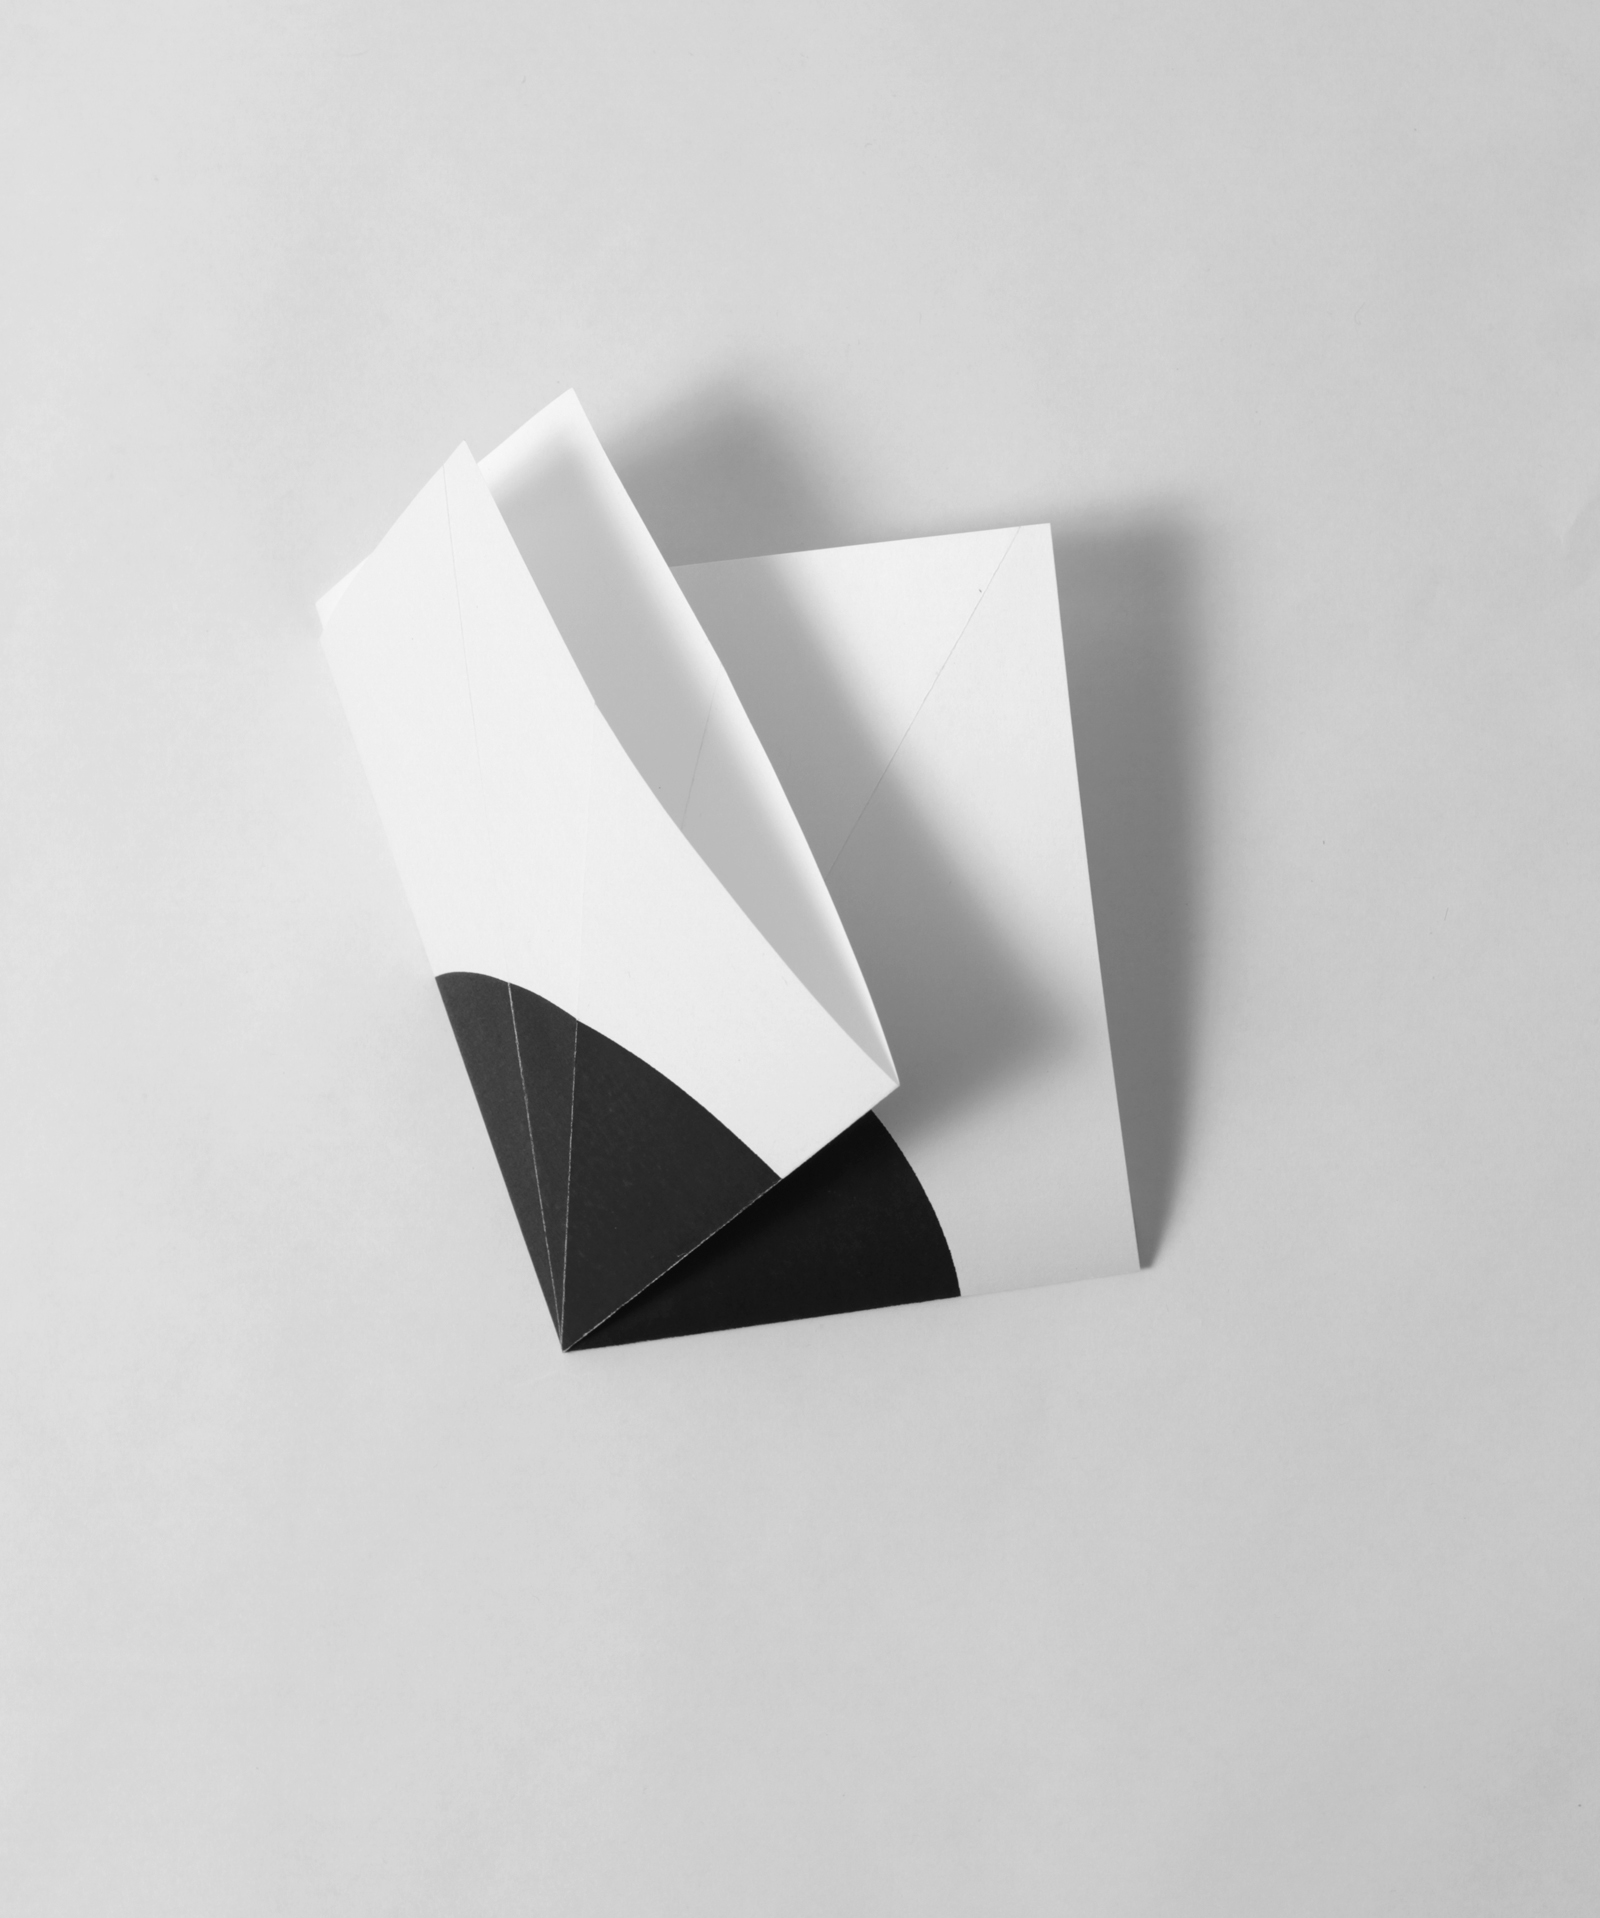 from the ongoing series: O/, Divided/Defined, Weights, Measures, and Emotional Geometry  2013, Folded photocopied circle. 8 x 10 inches folded